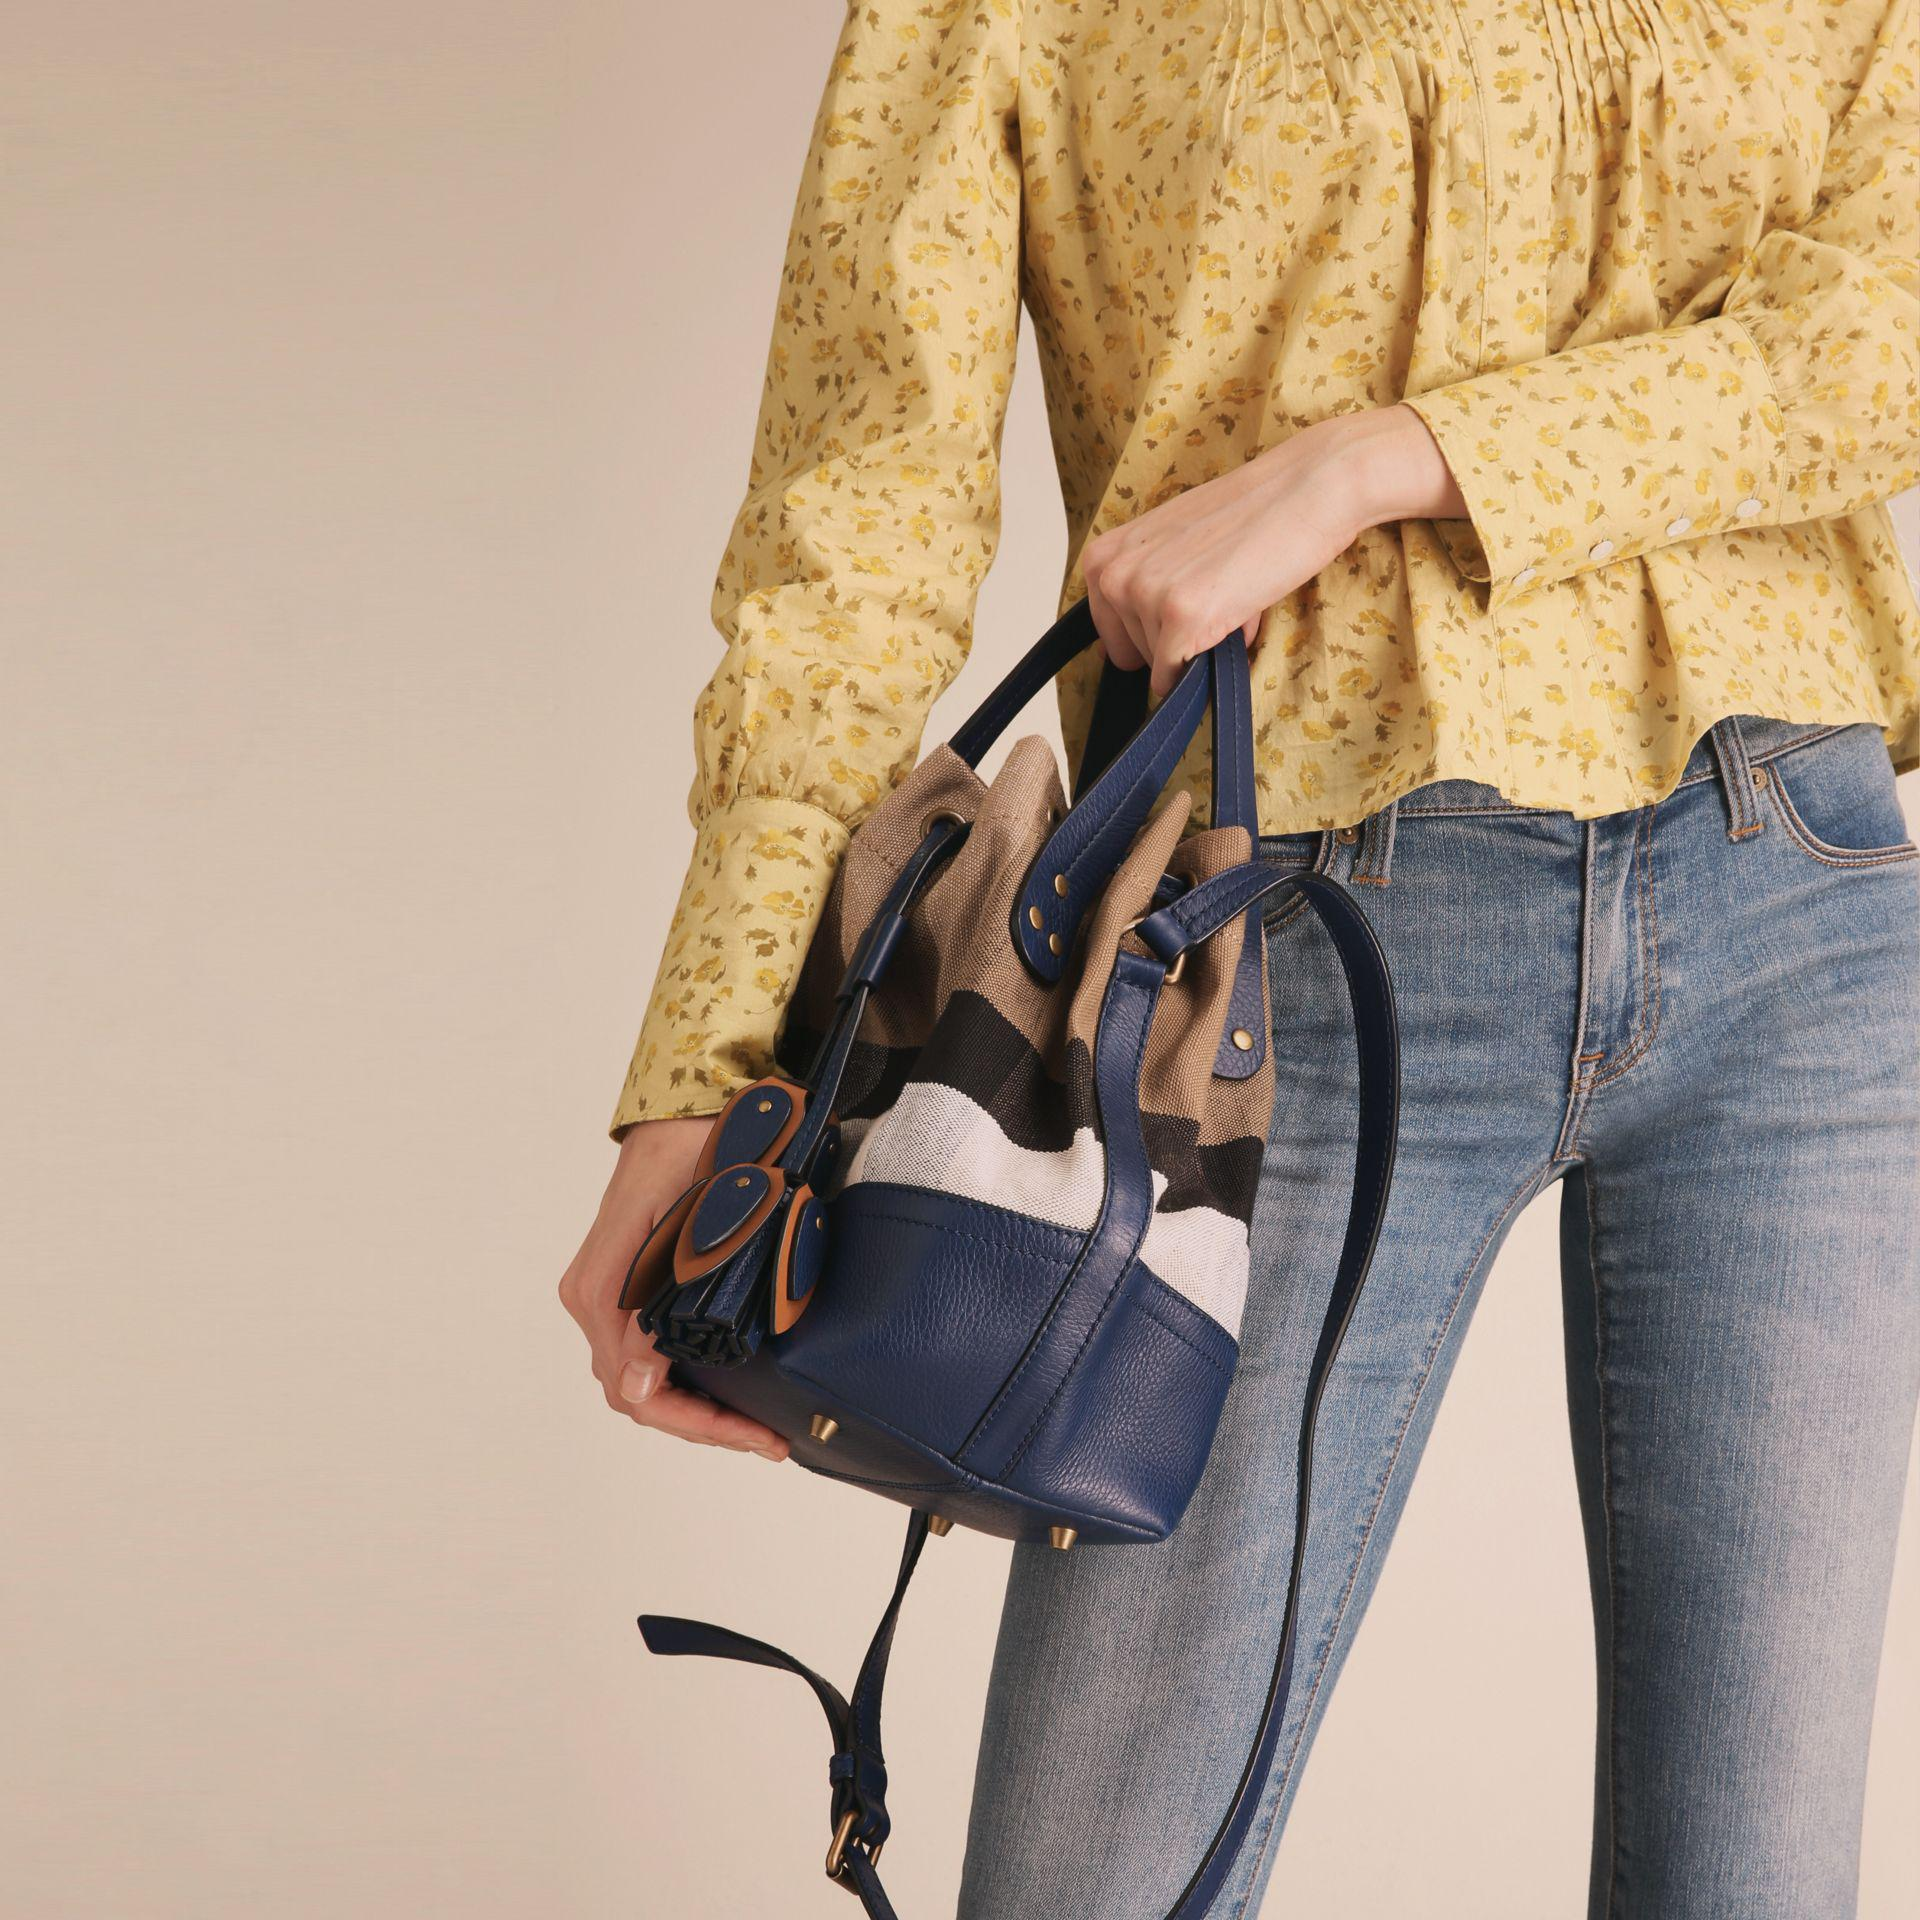 905dc35db60e Lyst - Burberry Small Canvas Check And Leather Bucket Bag In ...